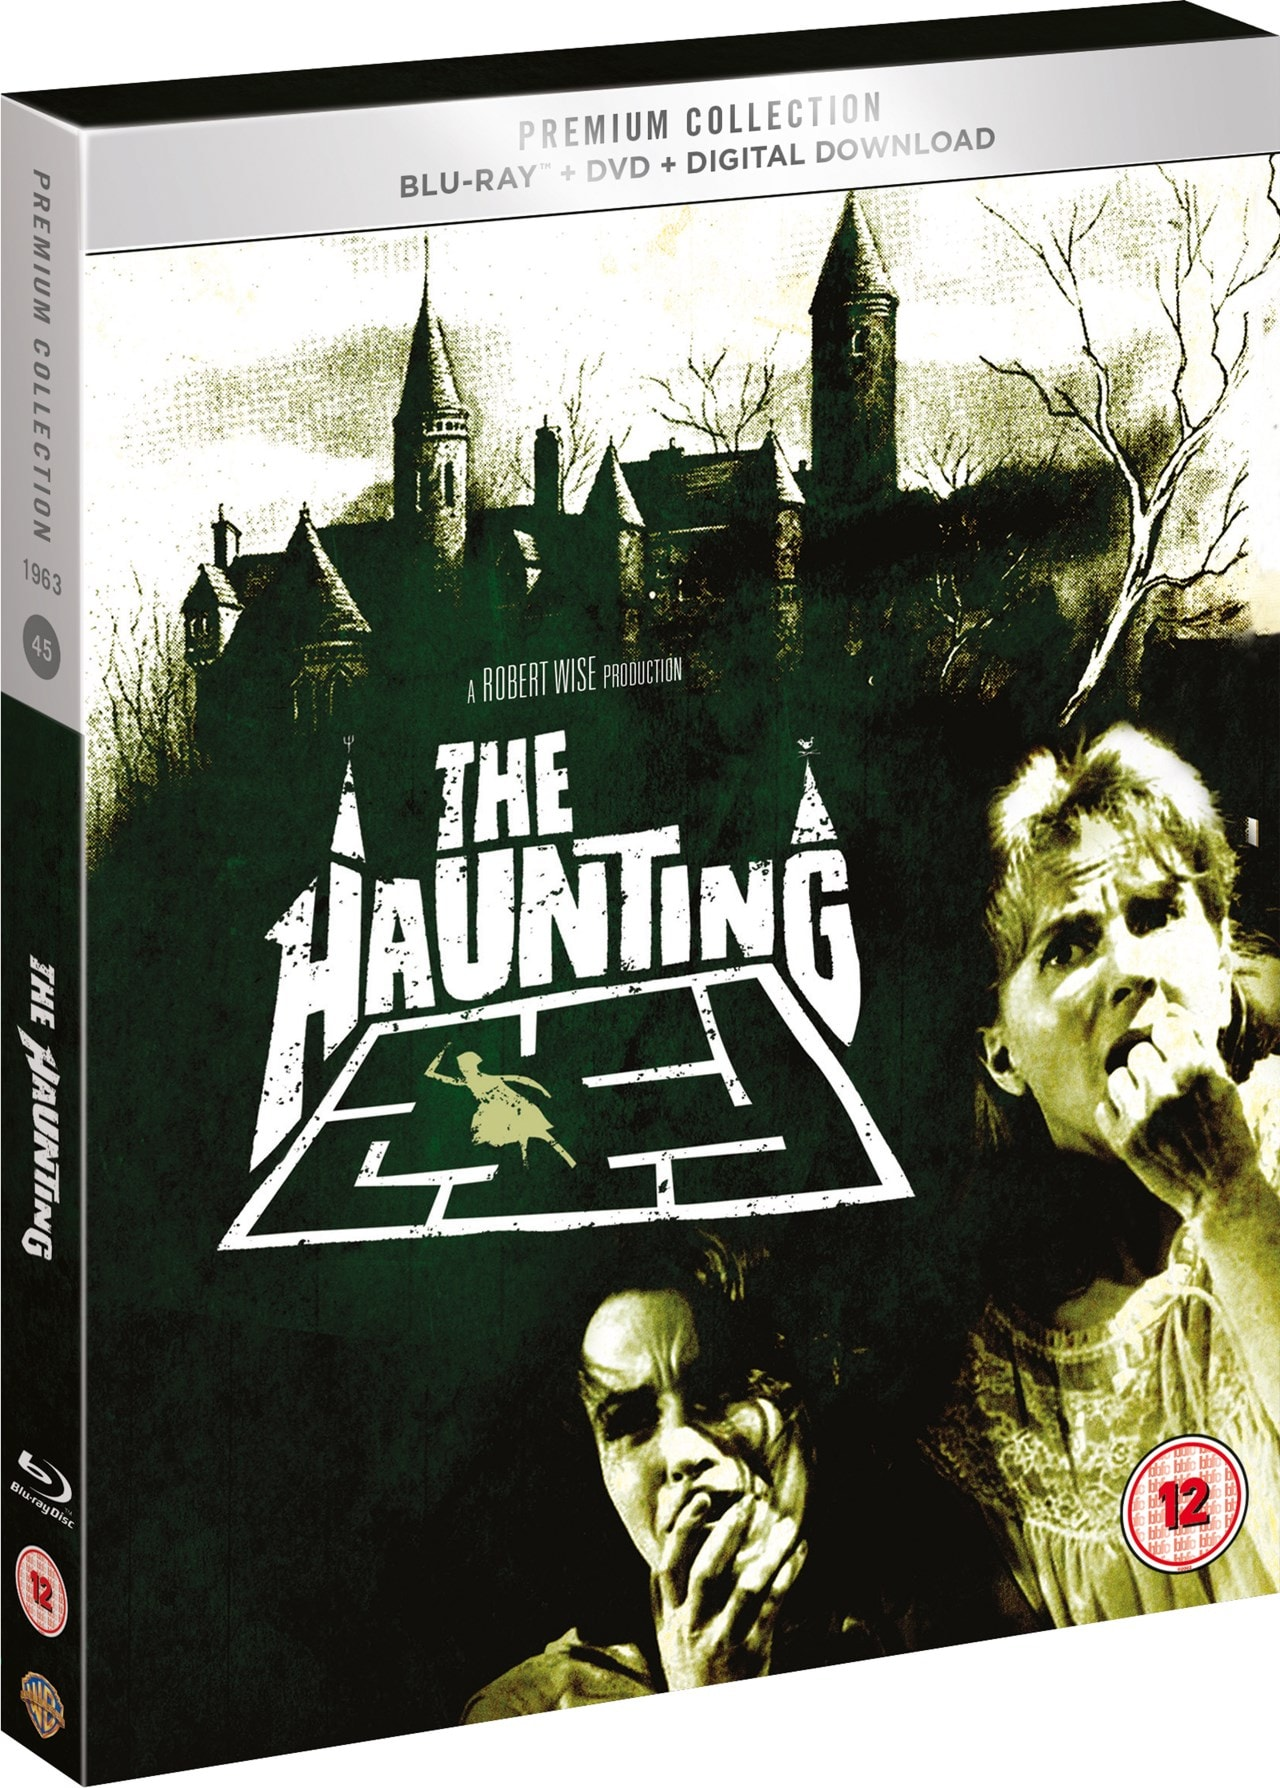 The Haunting (hmv Exclusive) - The Premium Collection - 2